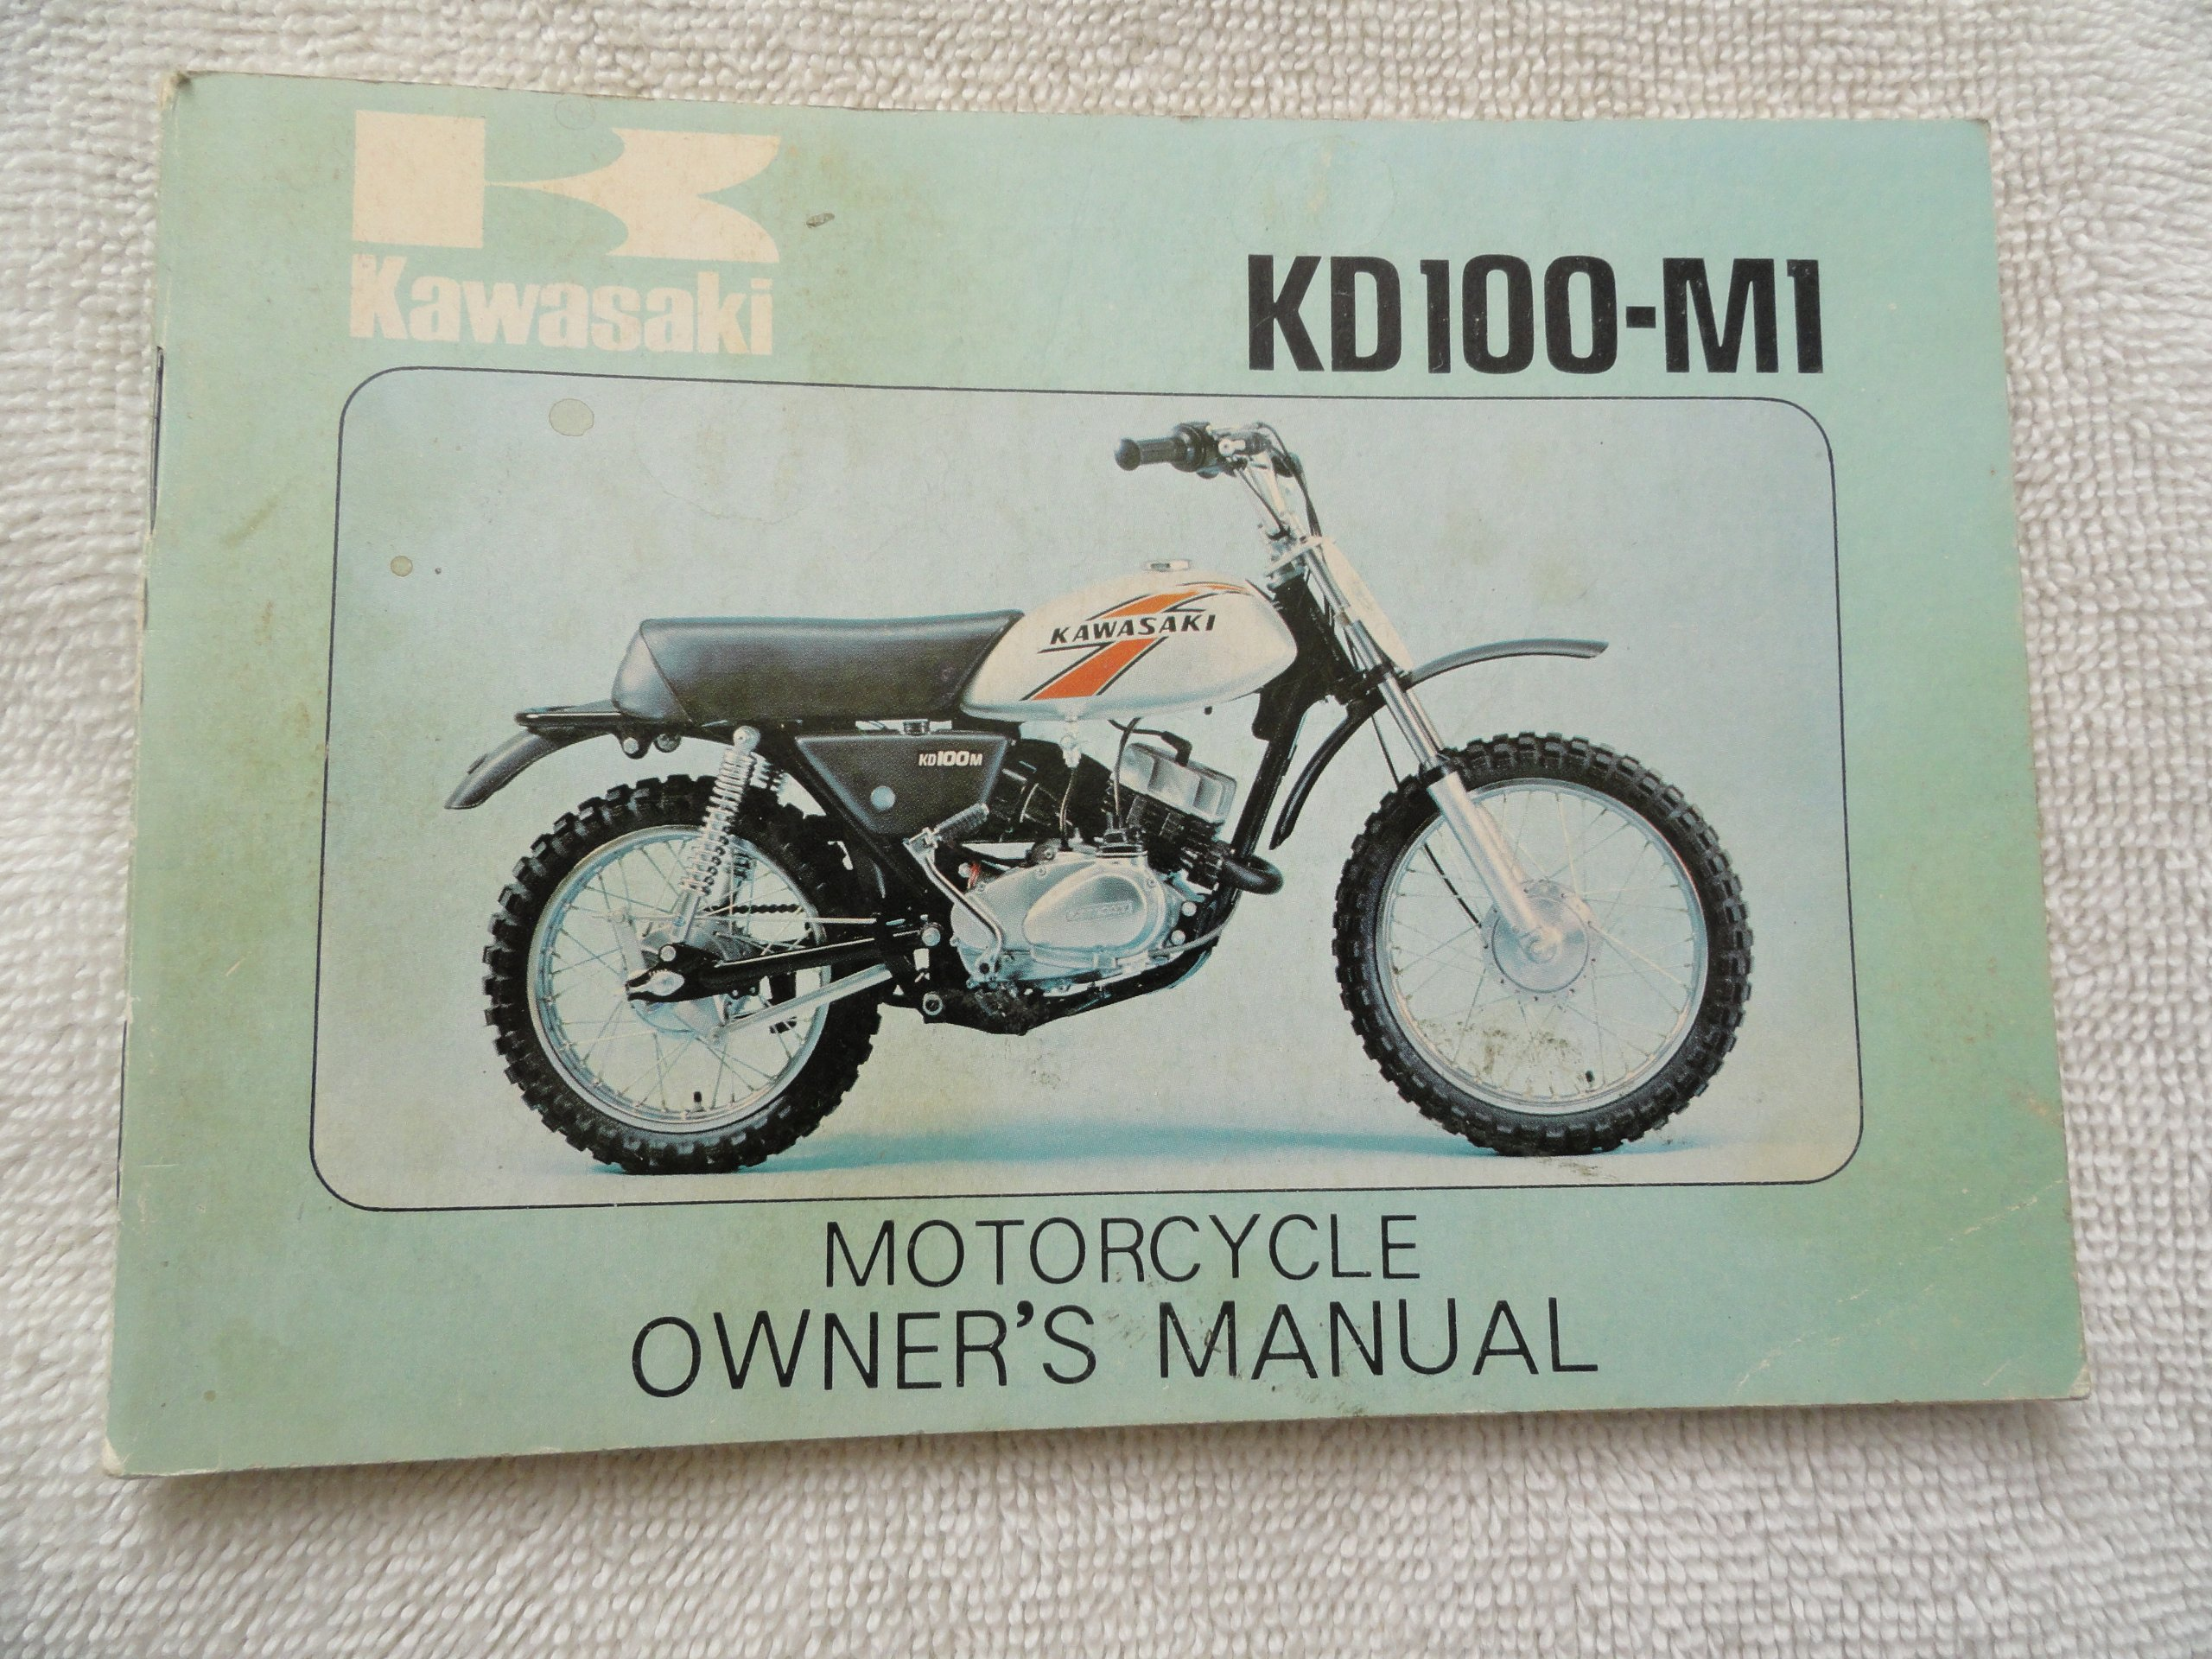 1975 1976 kawasaki kd100 owners manual kd 100 m1 kawasaki amazon rh amazon  com 1995 kawasaki ke100 service manual kawasaki ke100 repair manual